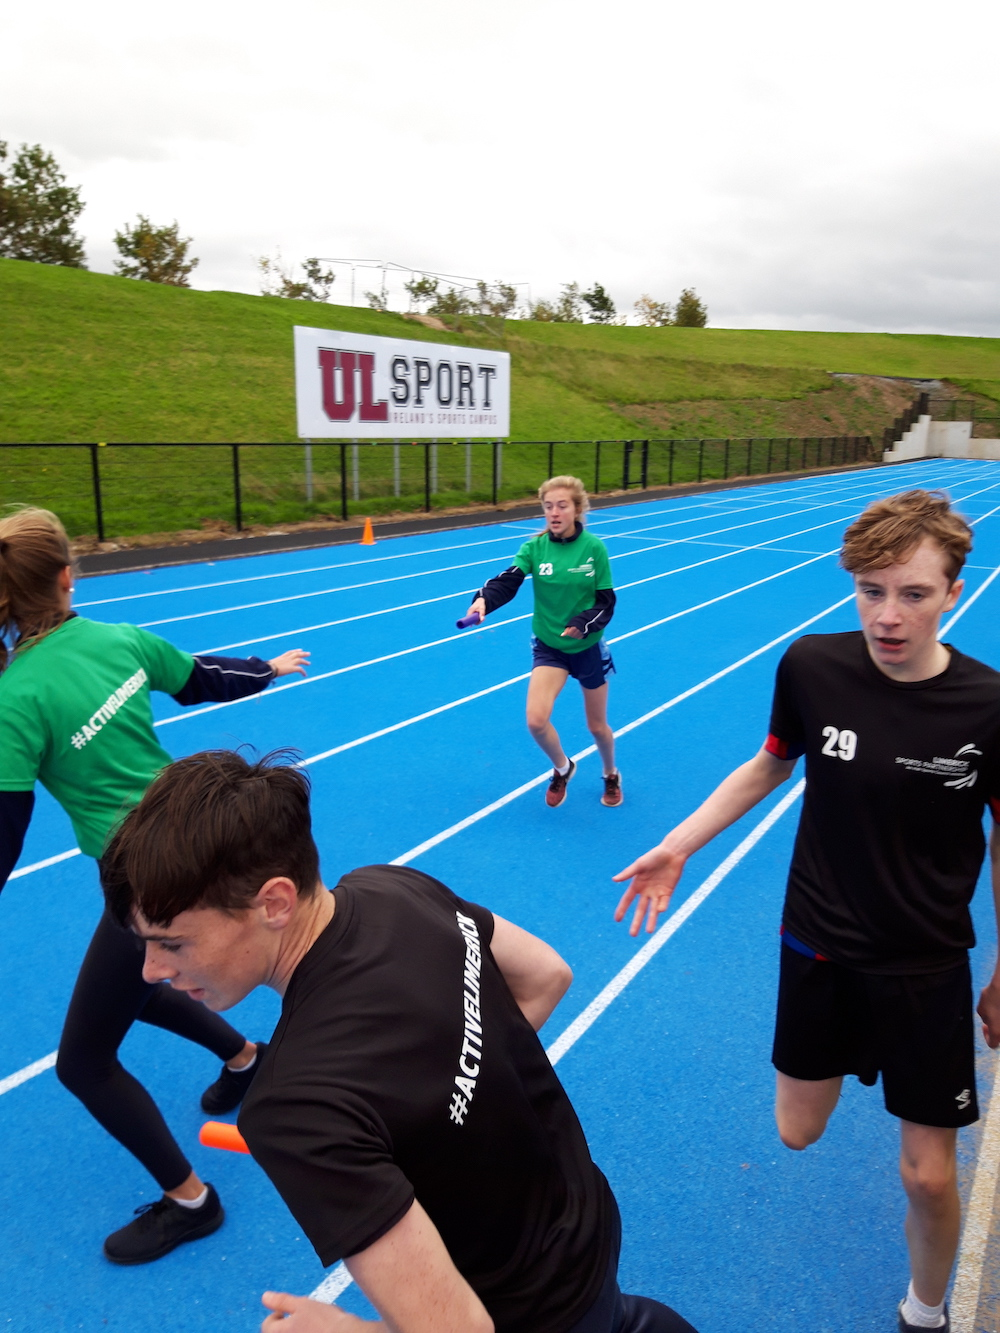 8th October 2018: Desmond College students went to University of Limerick to Participate in World Marathon Day